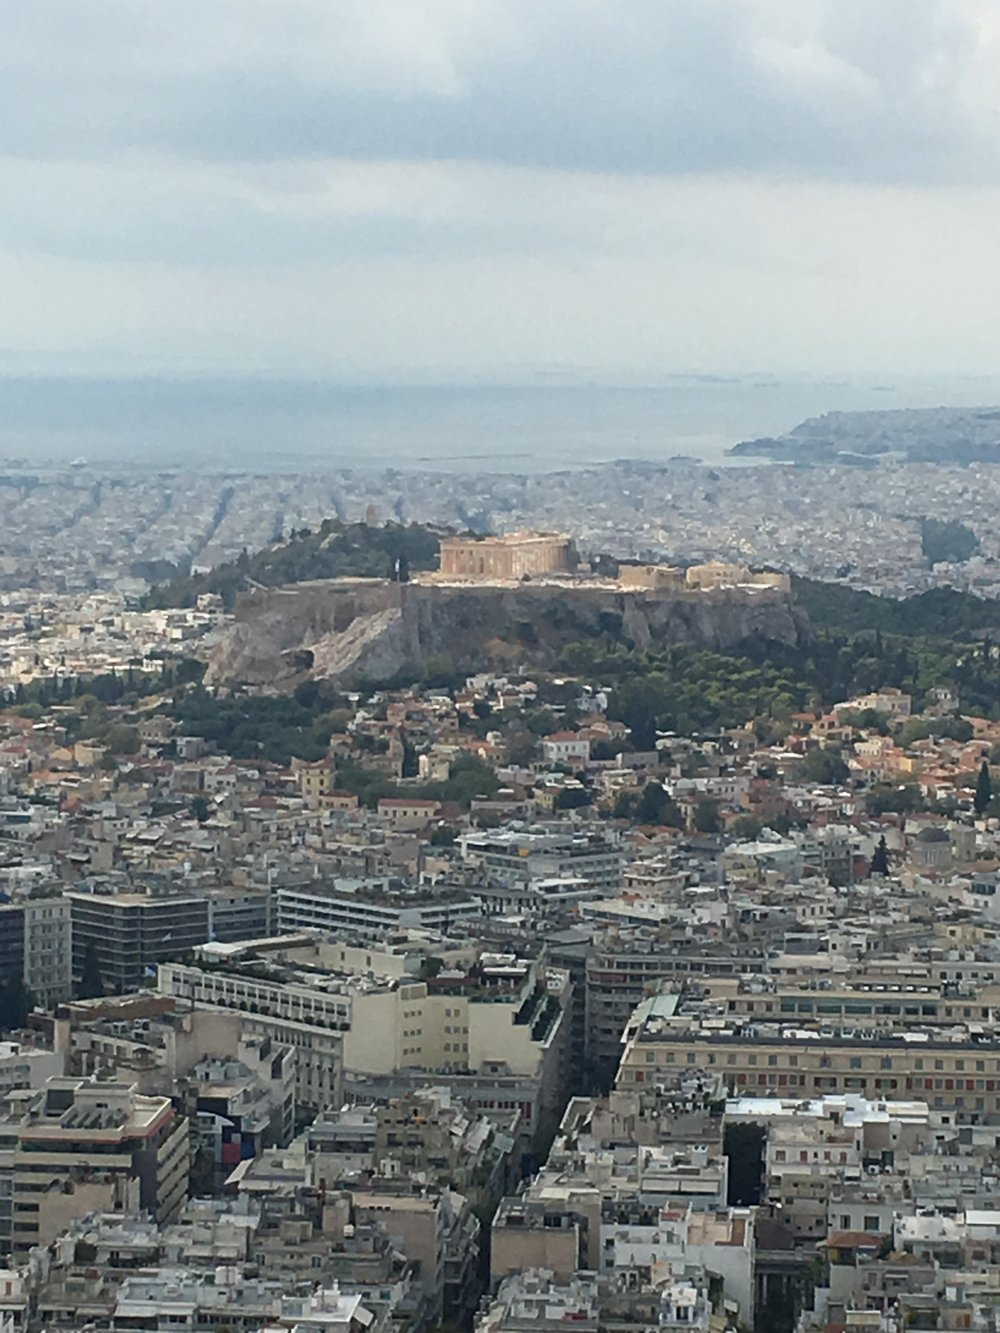 Acropolis rising above the city with the Aegean Sea in the back on a rare cloudy day